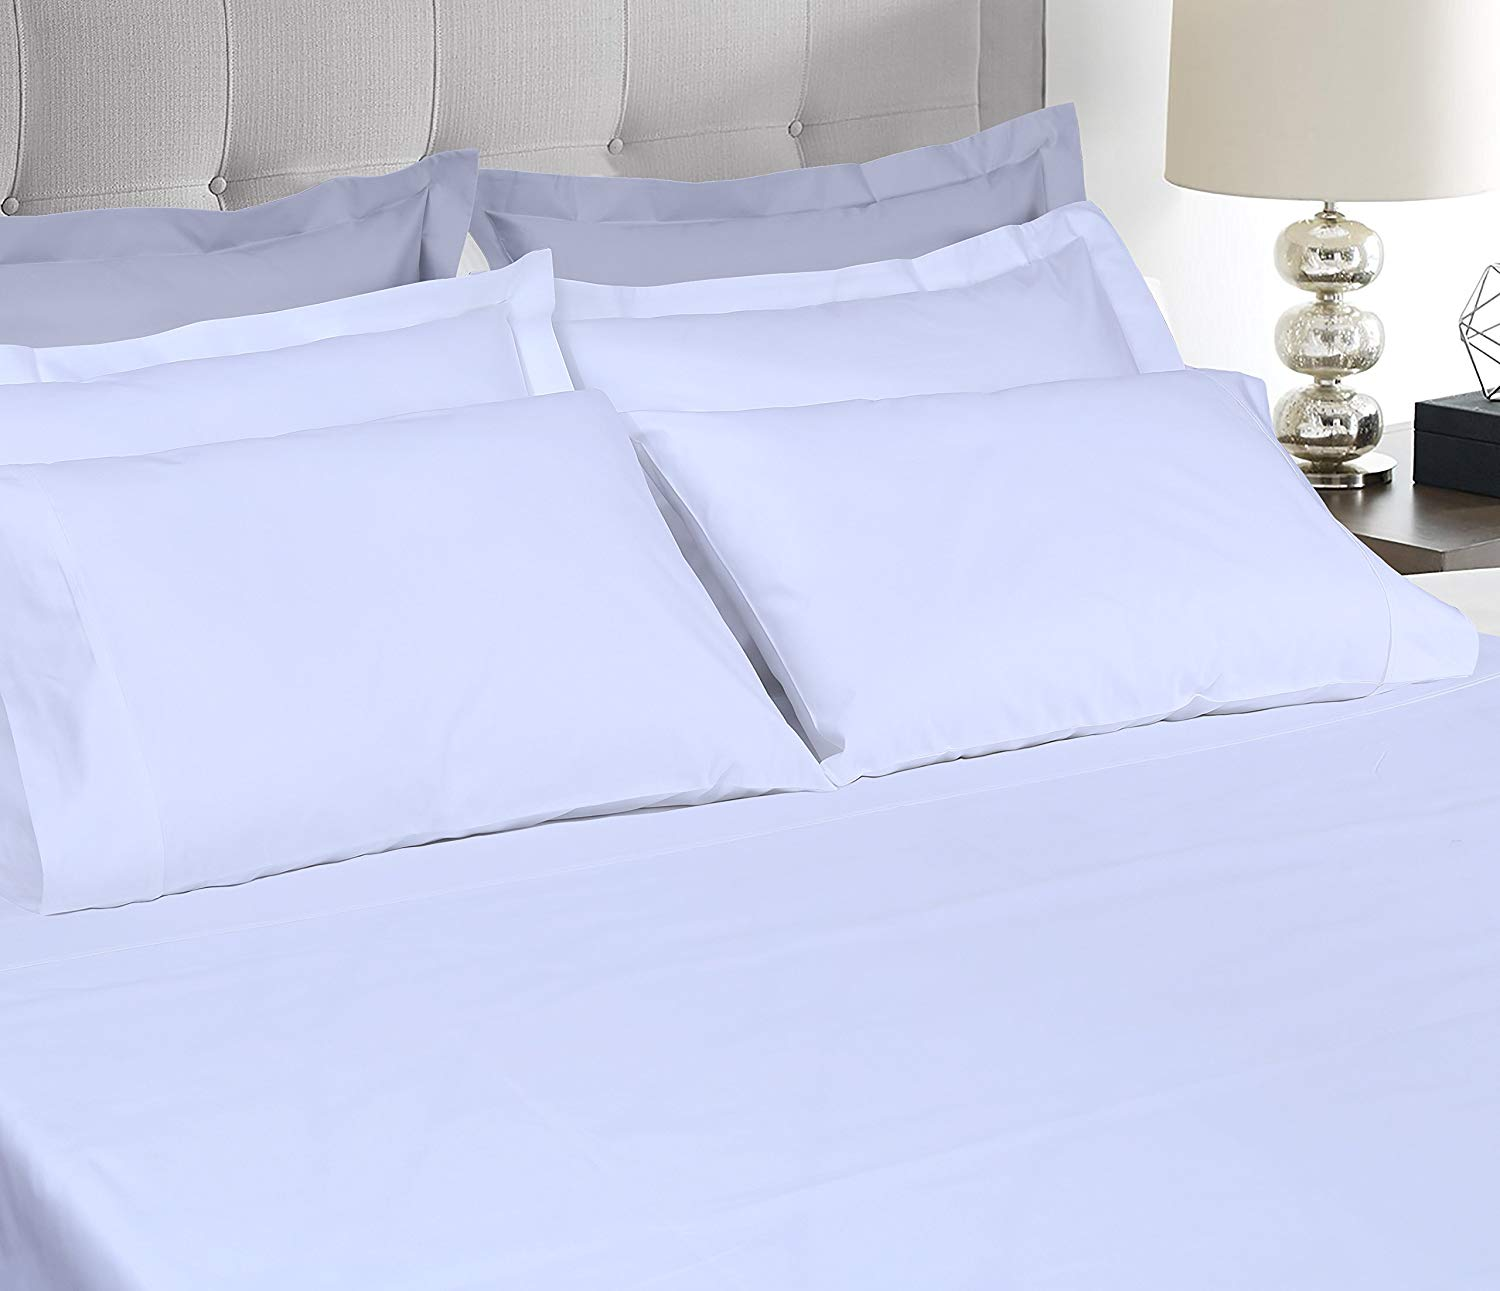 Threadmill Home Linen Best Bedding Sets Review by www.snoremagazine.com